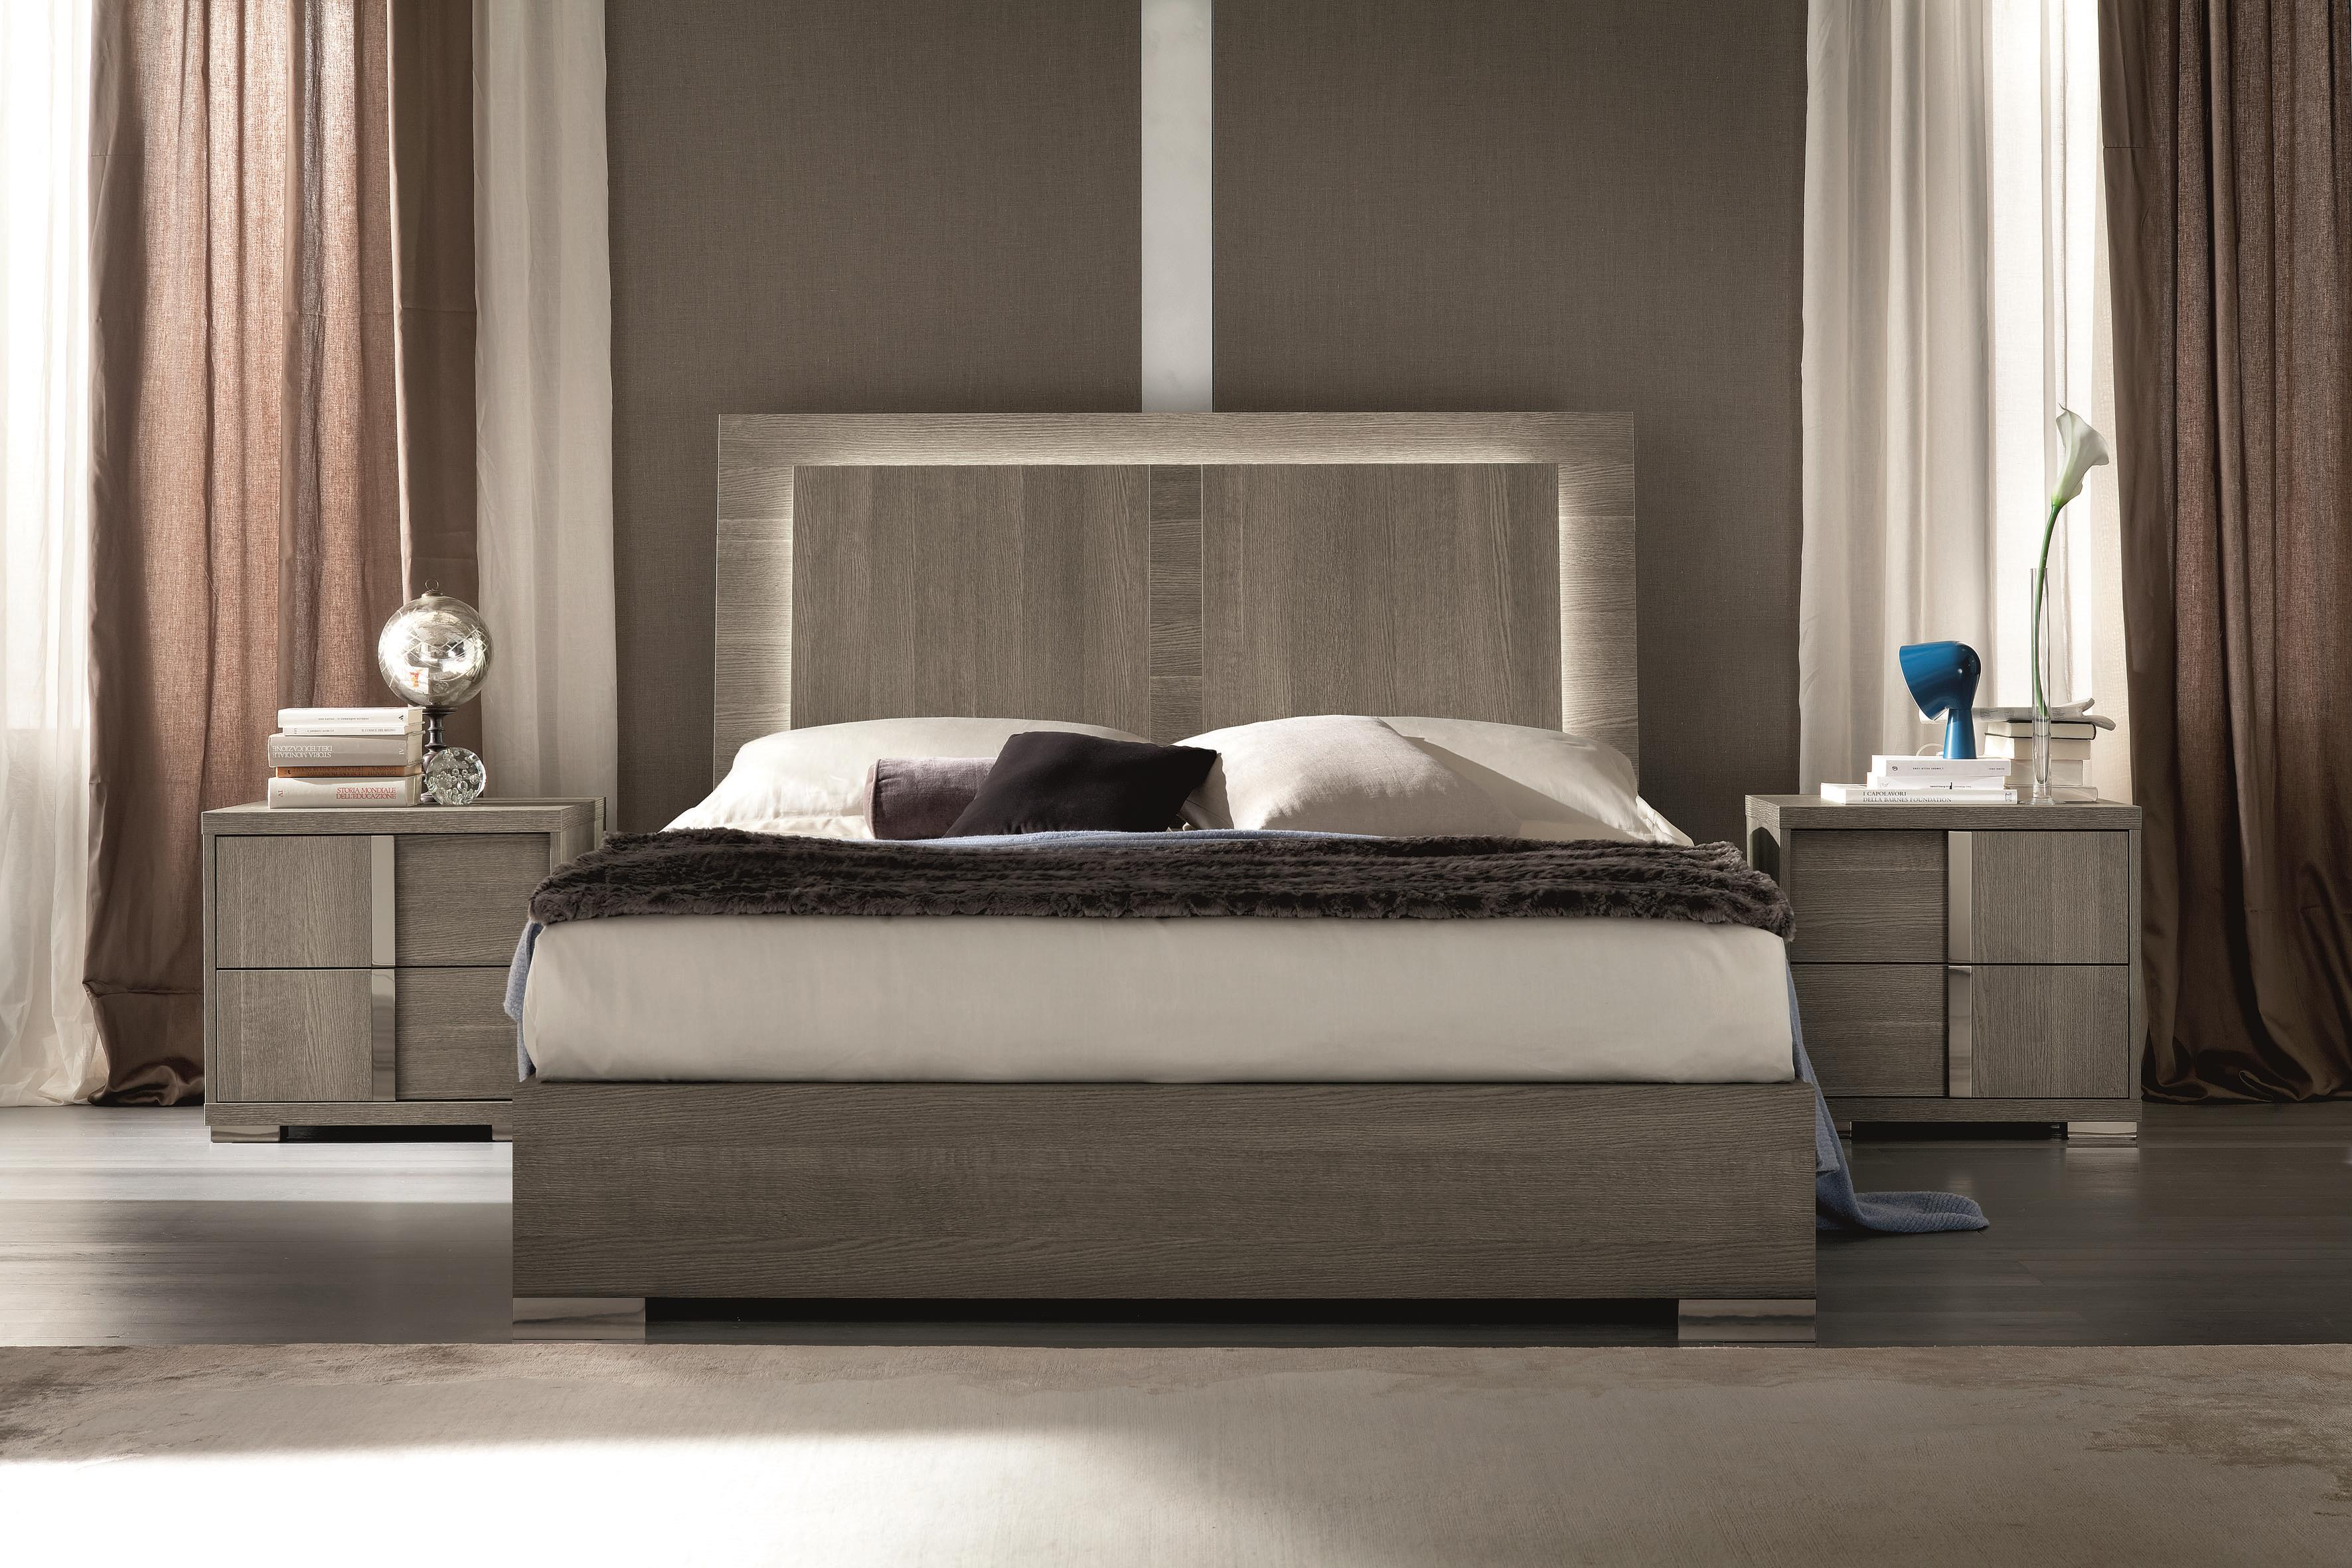 Tivoli CK Bedroom Group by Alf Italia at Upper Room Home Furnishings